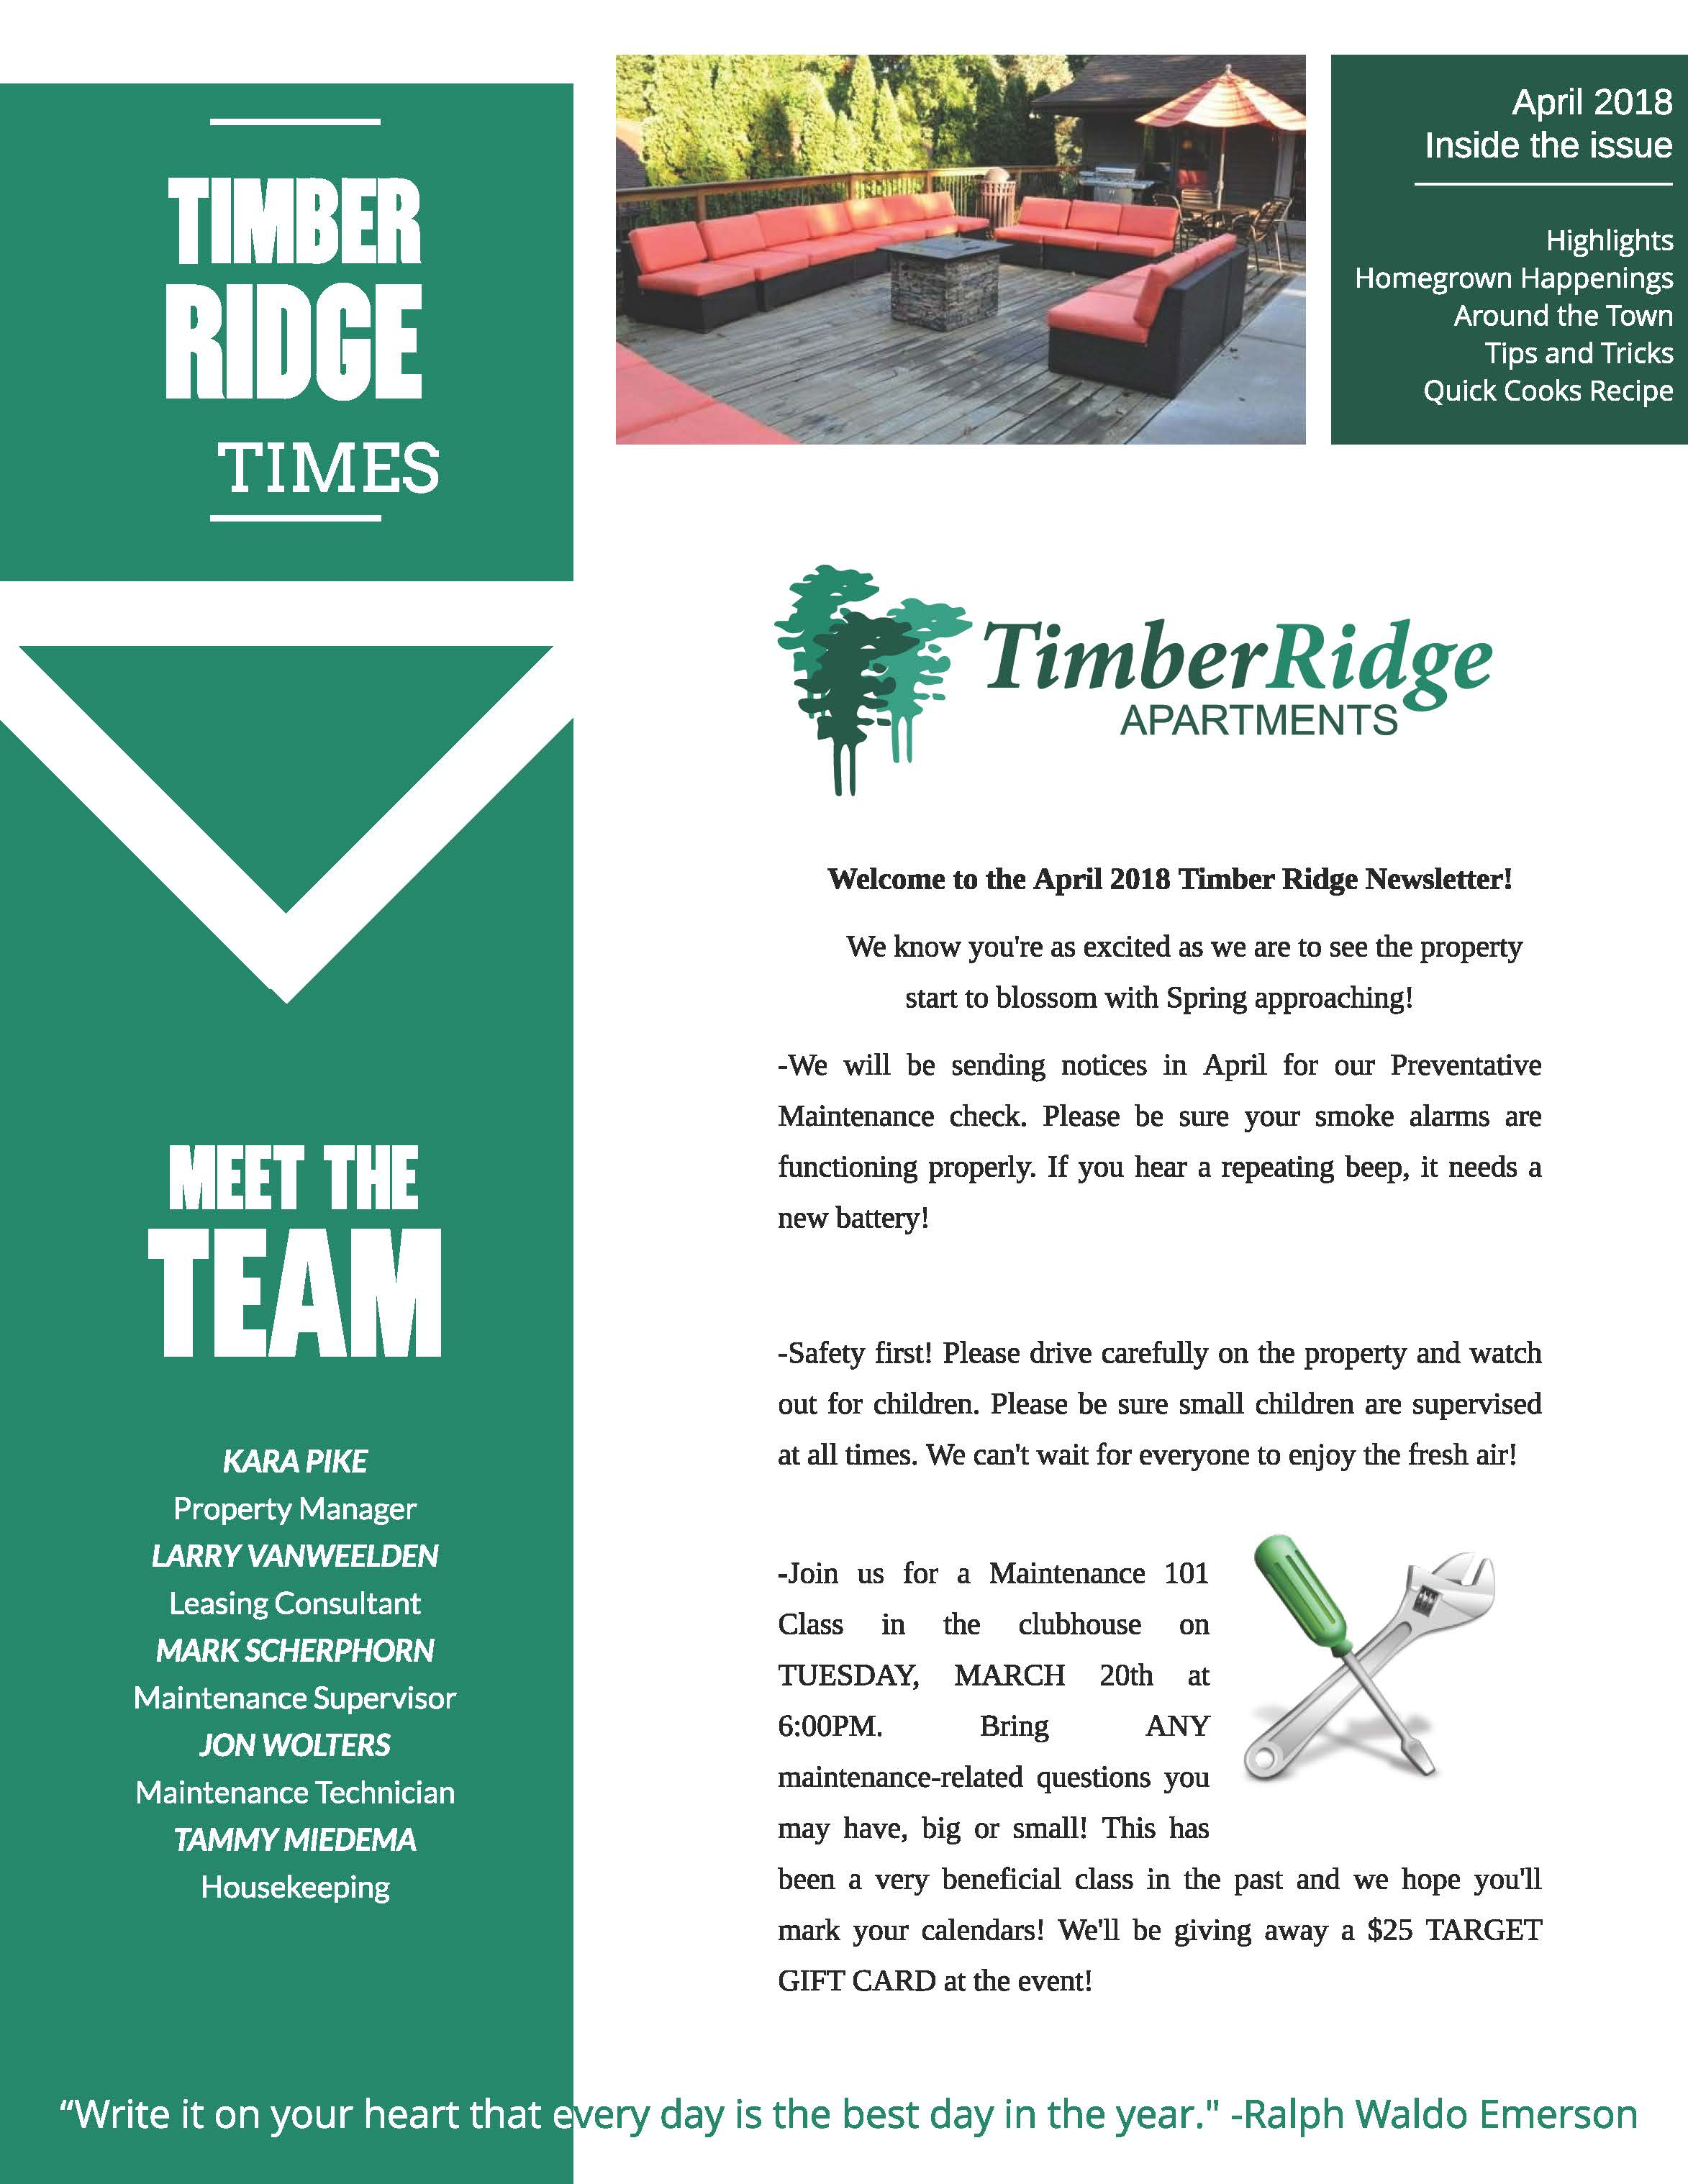 The Timber Ridge Apartments Community